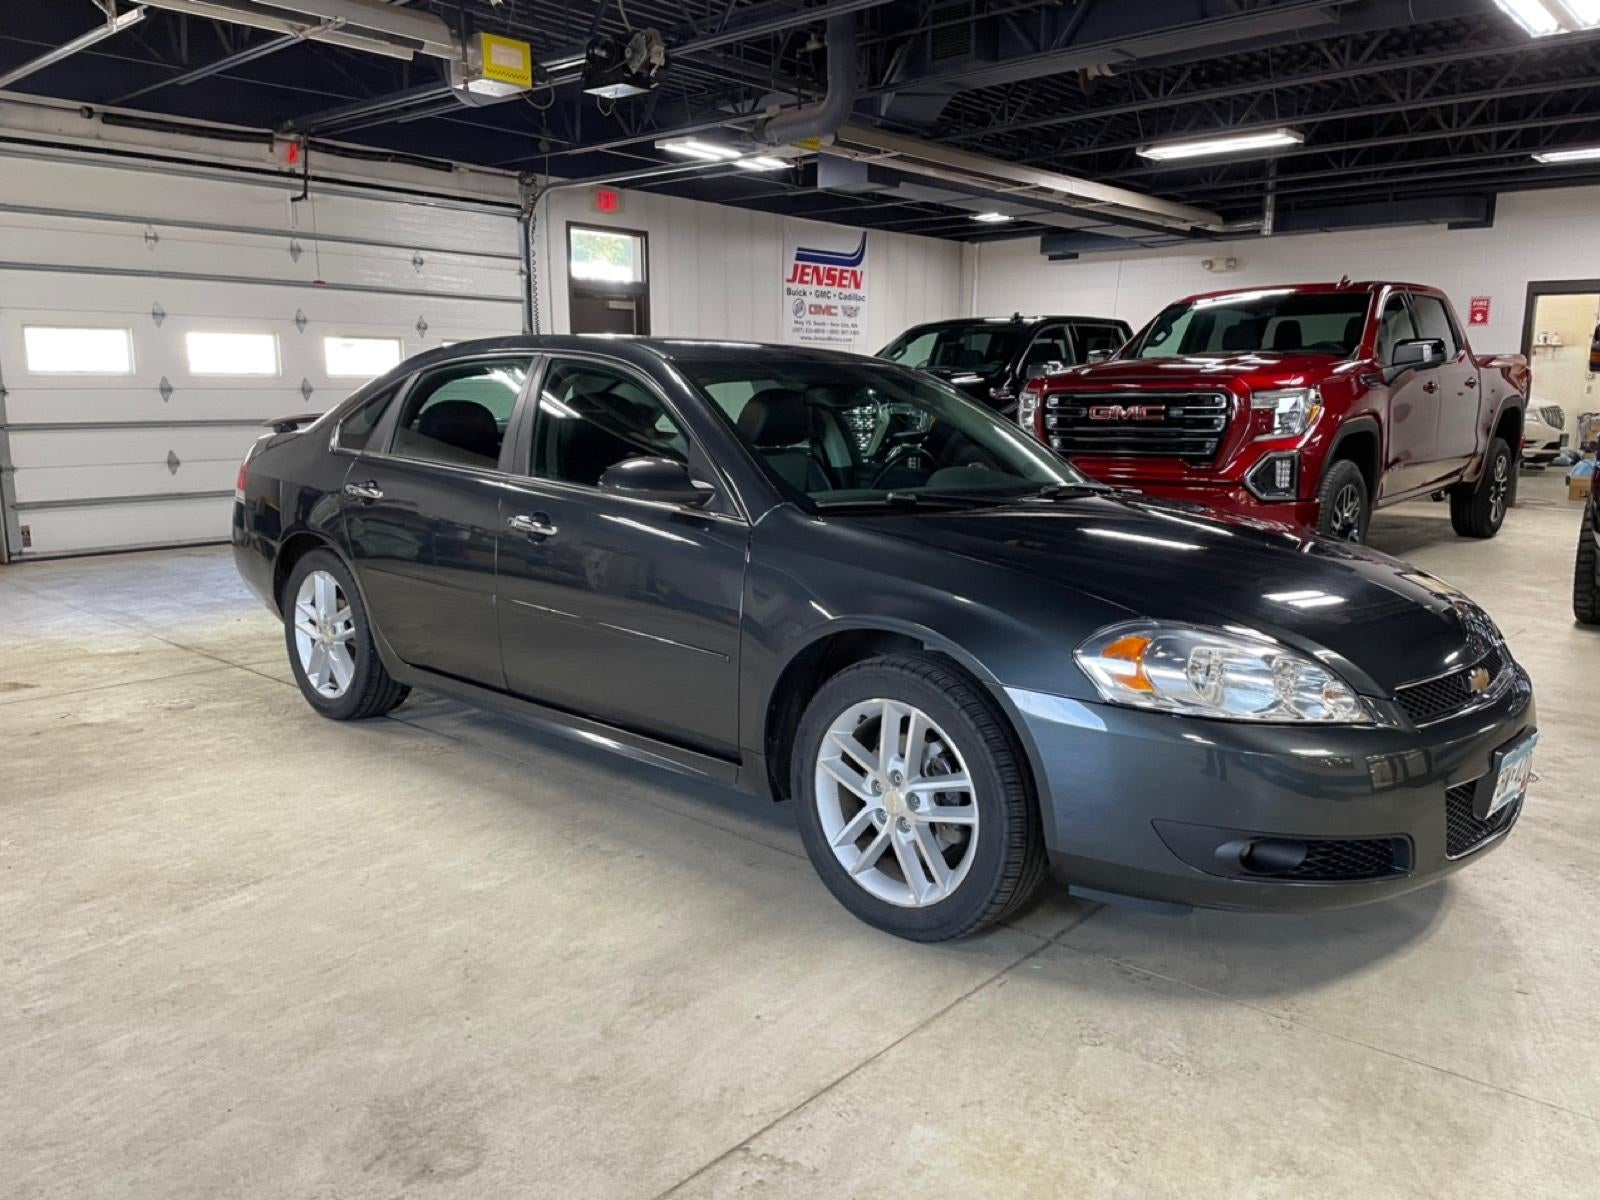 Used 2014 Chevrolet Impala 1LZ with VIN 2G1WC5E37E1190370 for sale in New Ulm, Minnesota